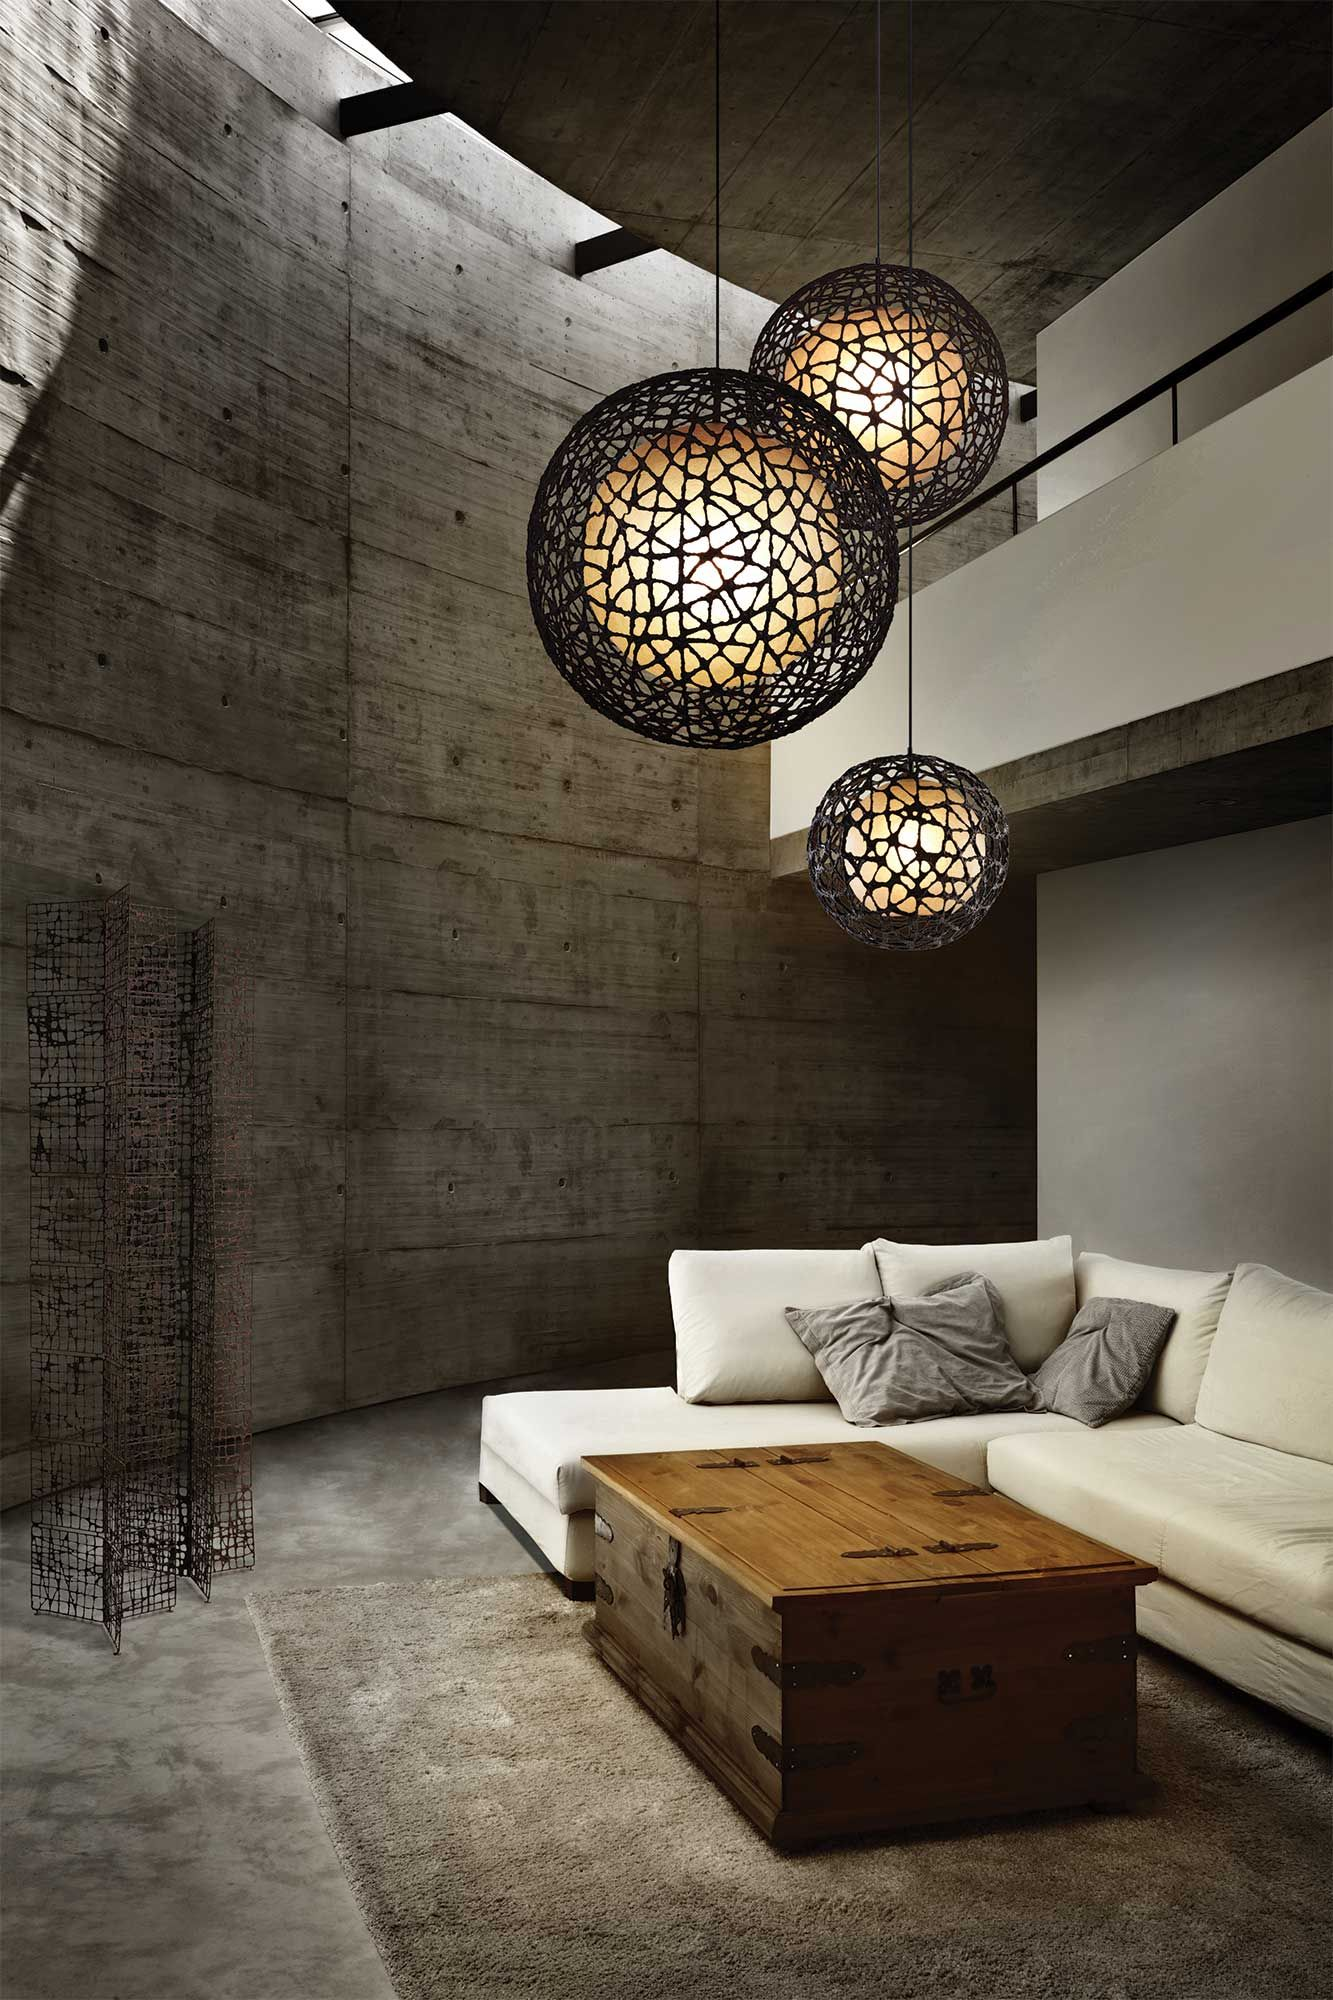 Living Room Lighting Gallery   Contemporary   Pendant Lighting   Other  Metro   Lightology Part 39